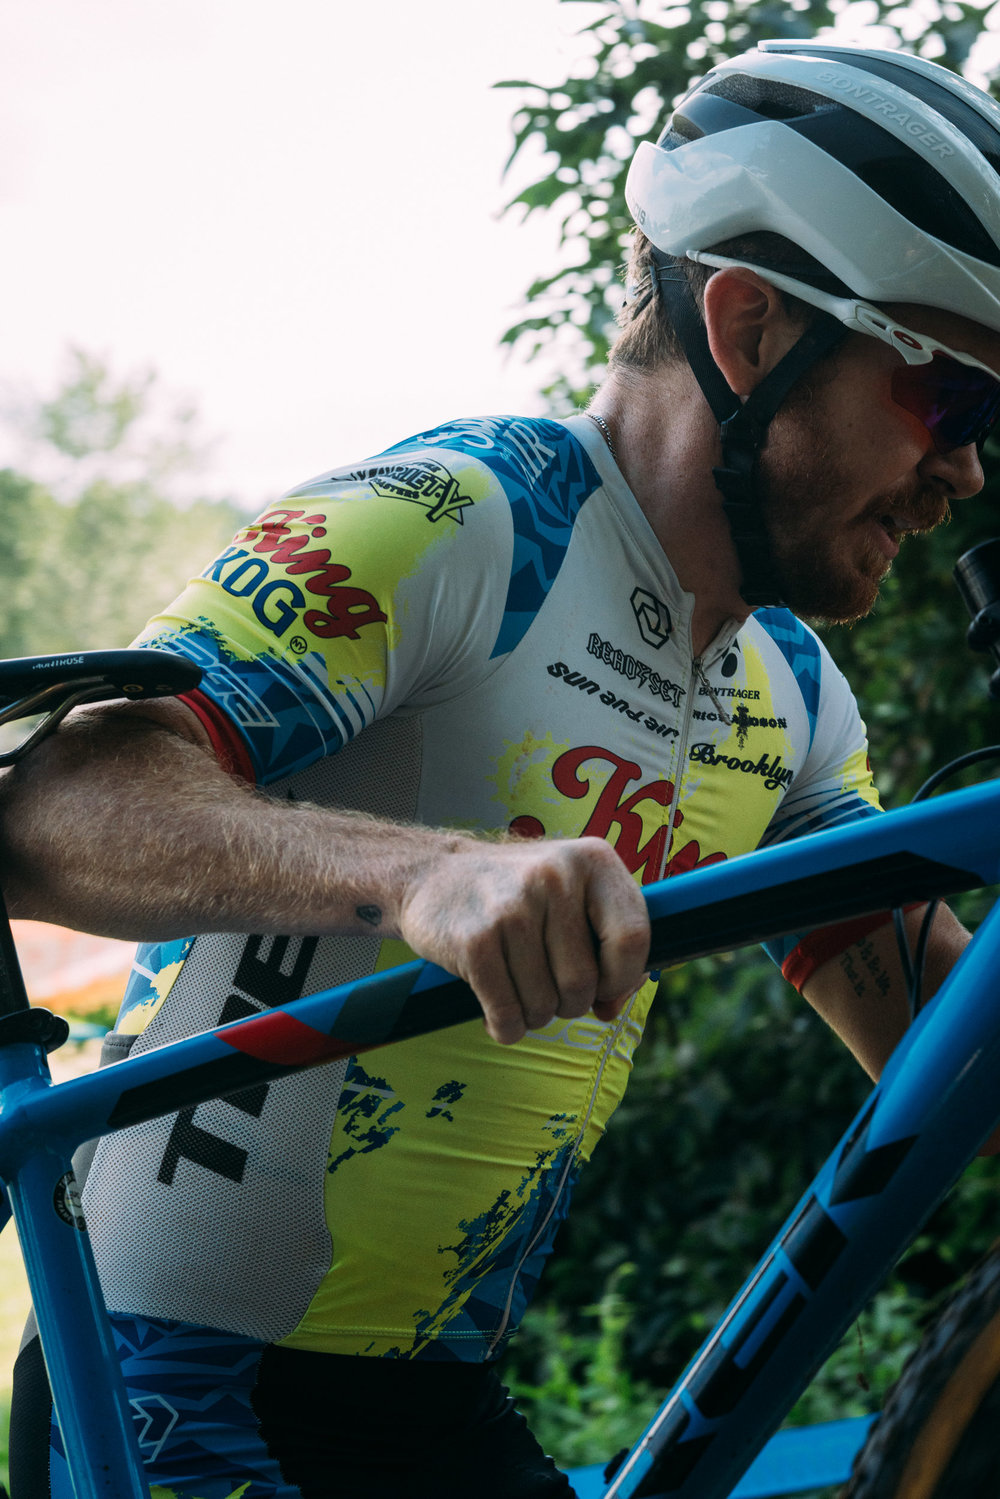 photo-rhetoric-to-be-determined-nittany-cyclocross-1174.jpg